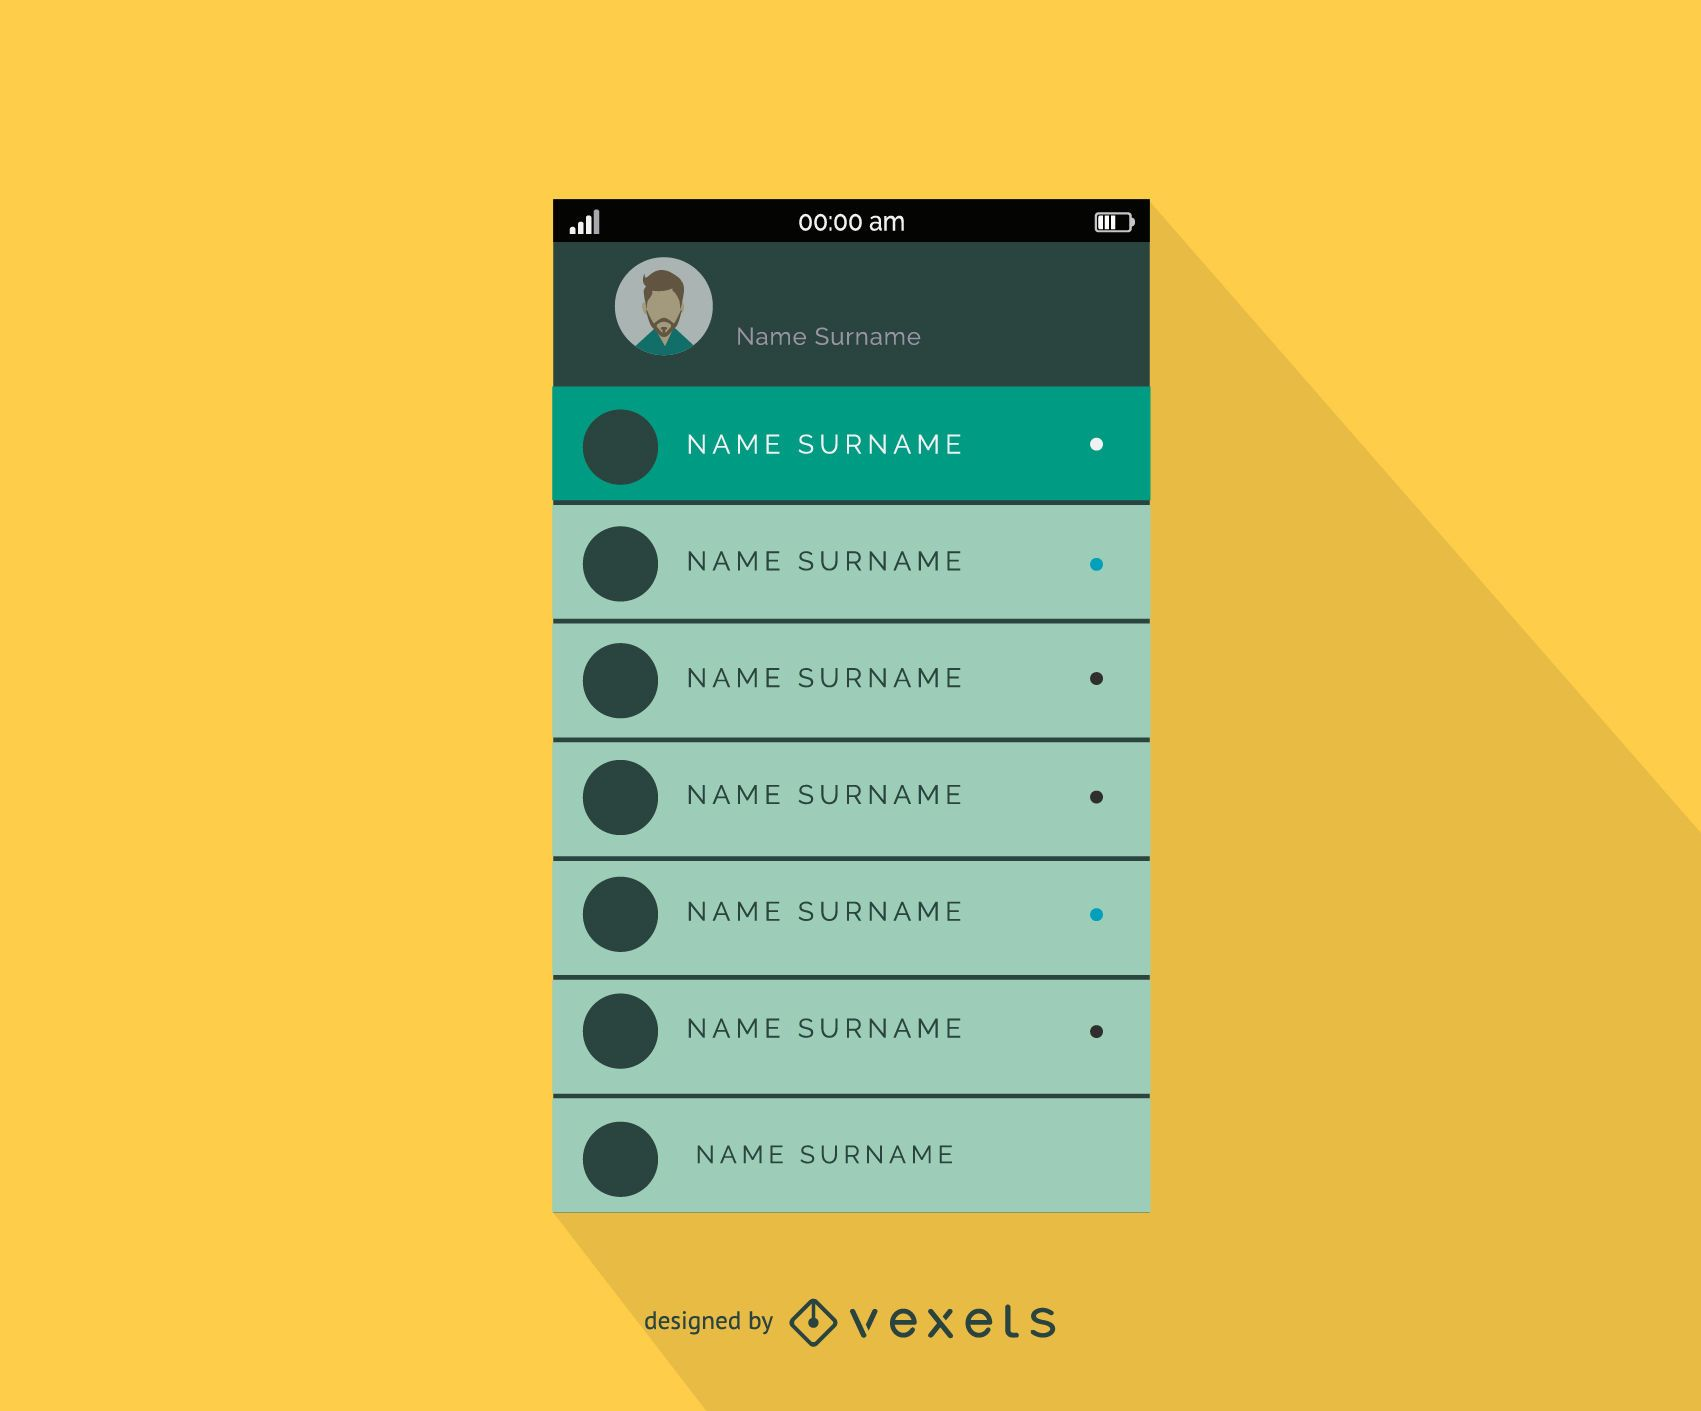 Mobile contacts list interface design template vector download image user maxwellsz